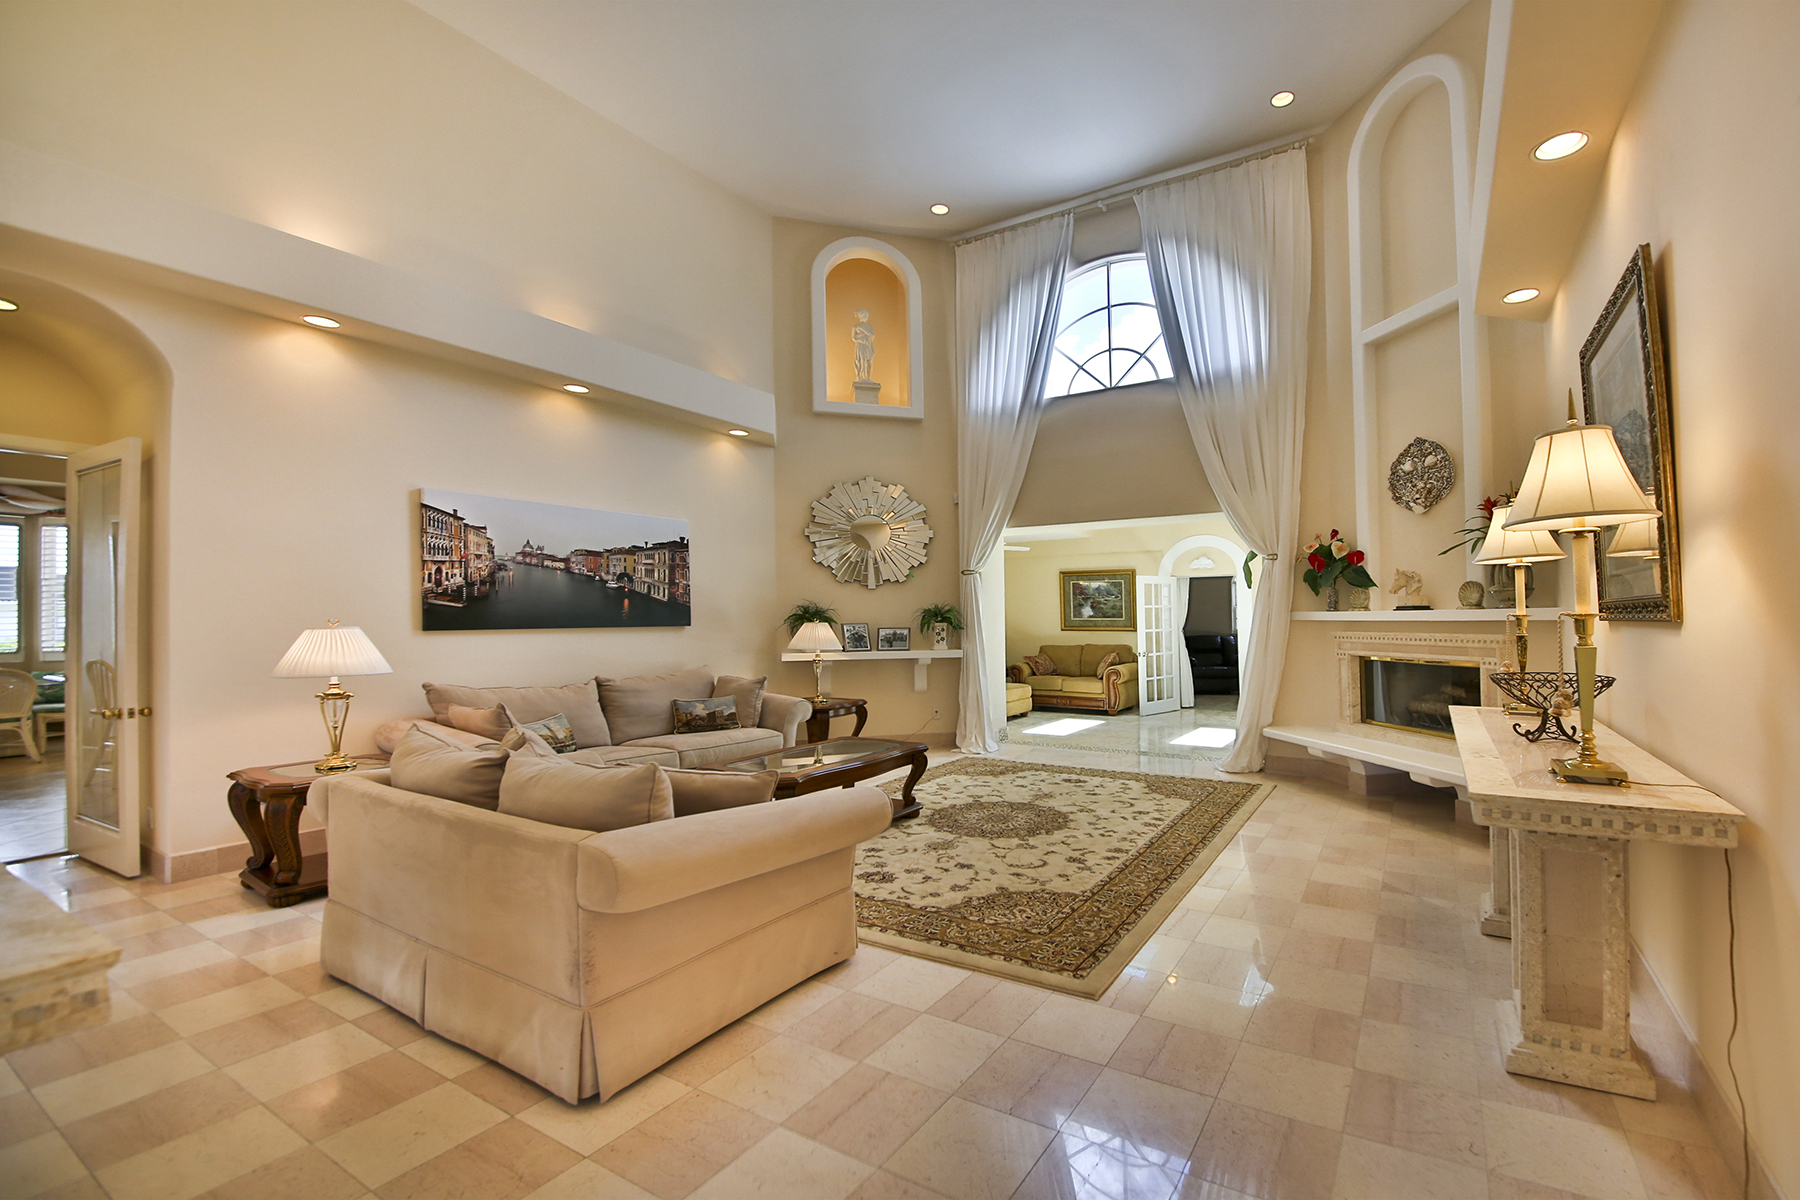 Casa Unifamiliar por un Venta en MARCO ISLAND - COPPERFIELD COURT 331 Copperfield Ct Marco Island, Florida 34145 Estados Unidos